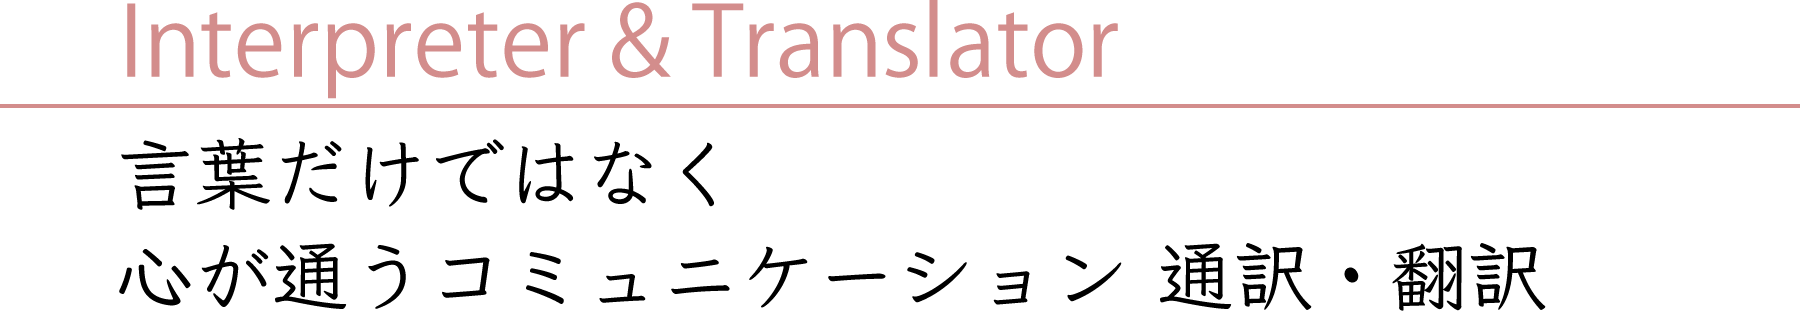 Interpreter & Translator